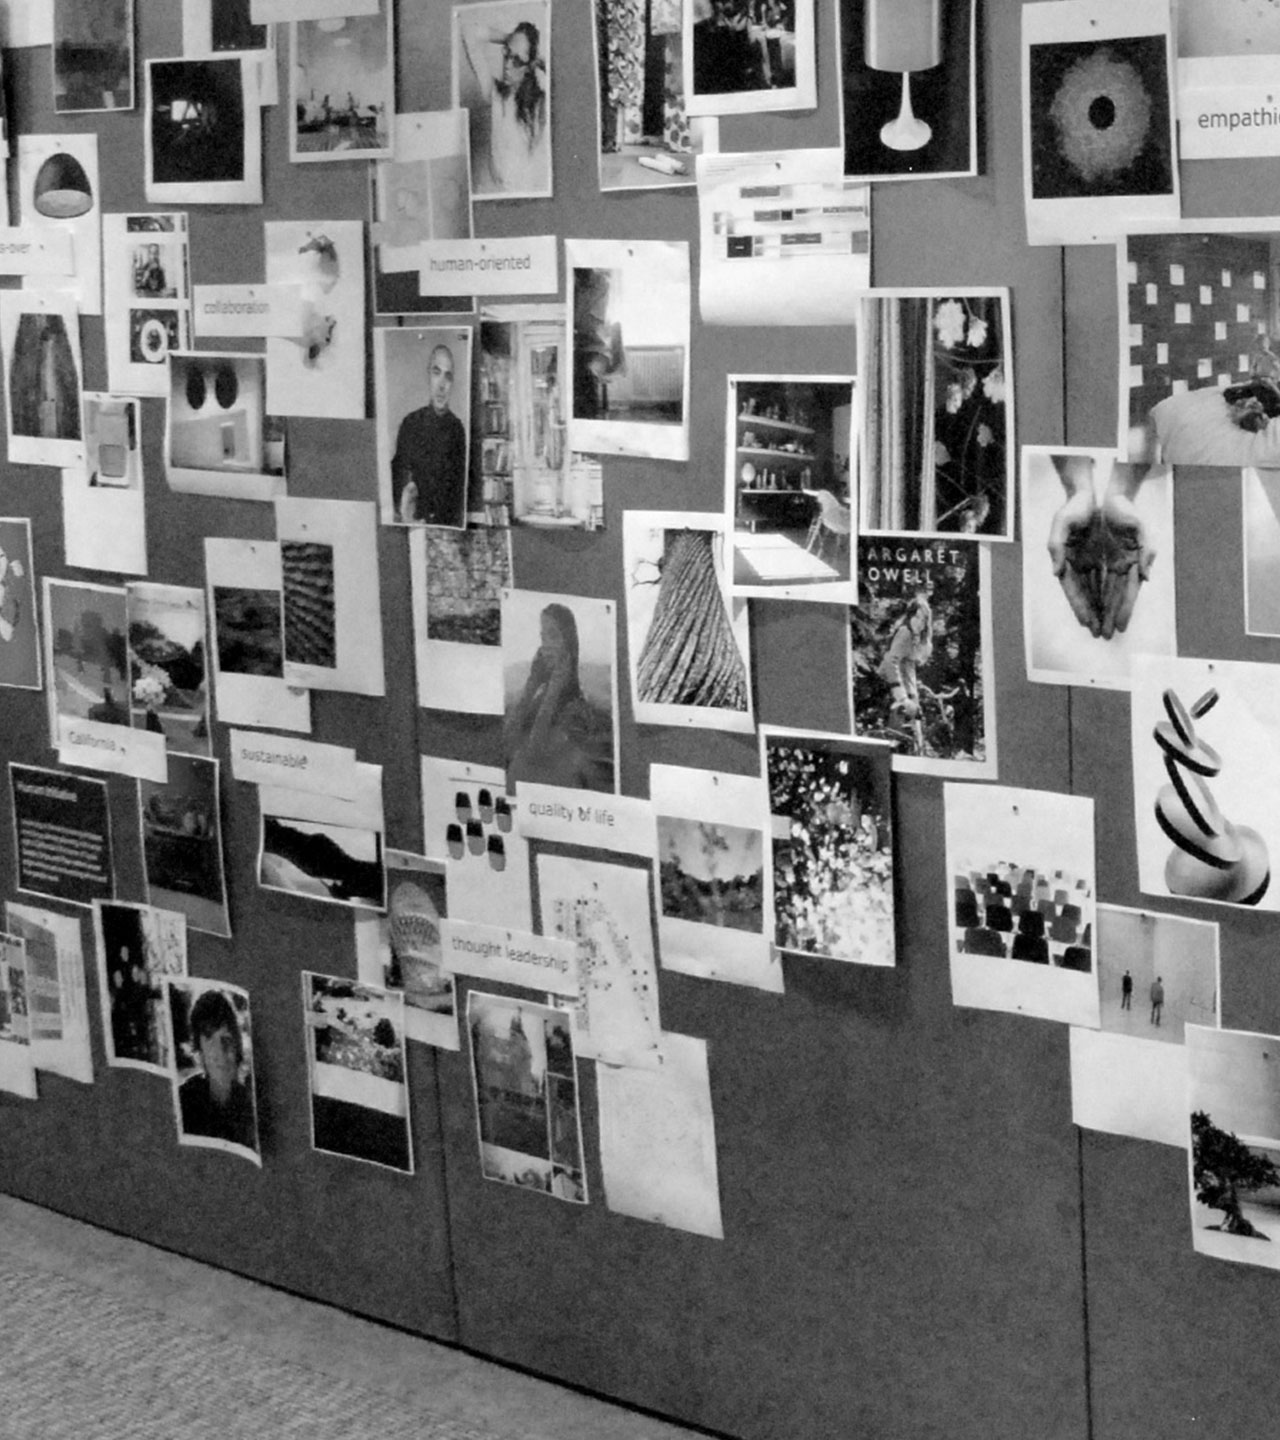 Coalesse Brand Launch Exploration Wall at Tolleson